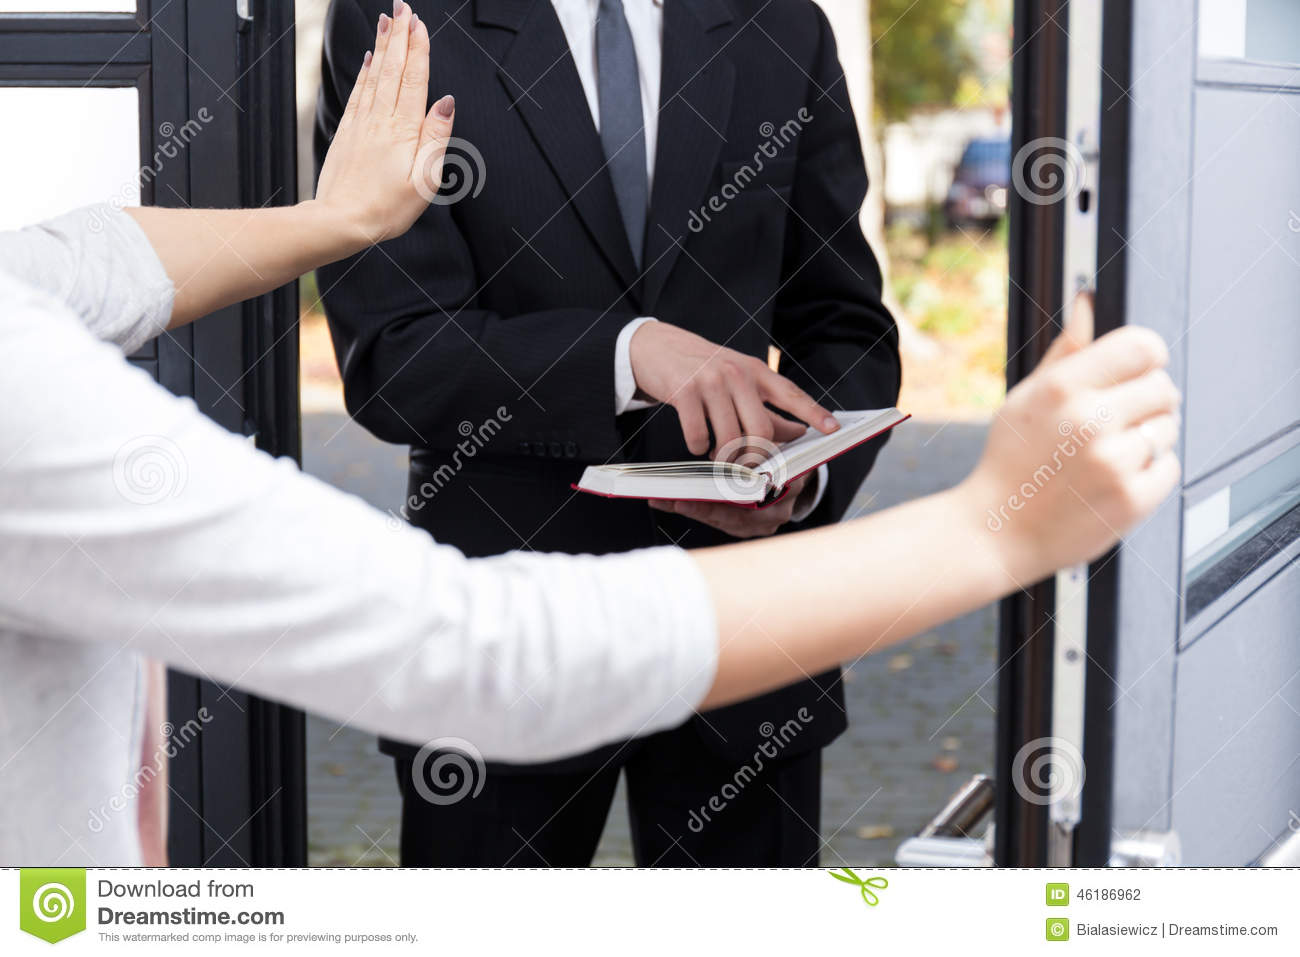 Jehowah s witness